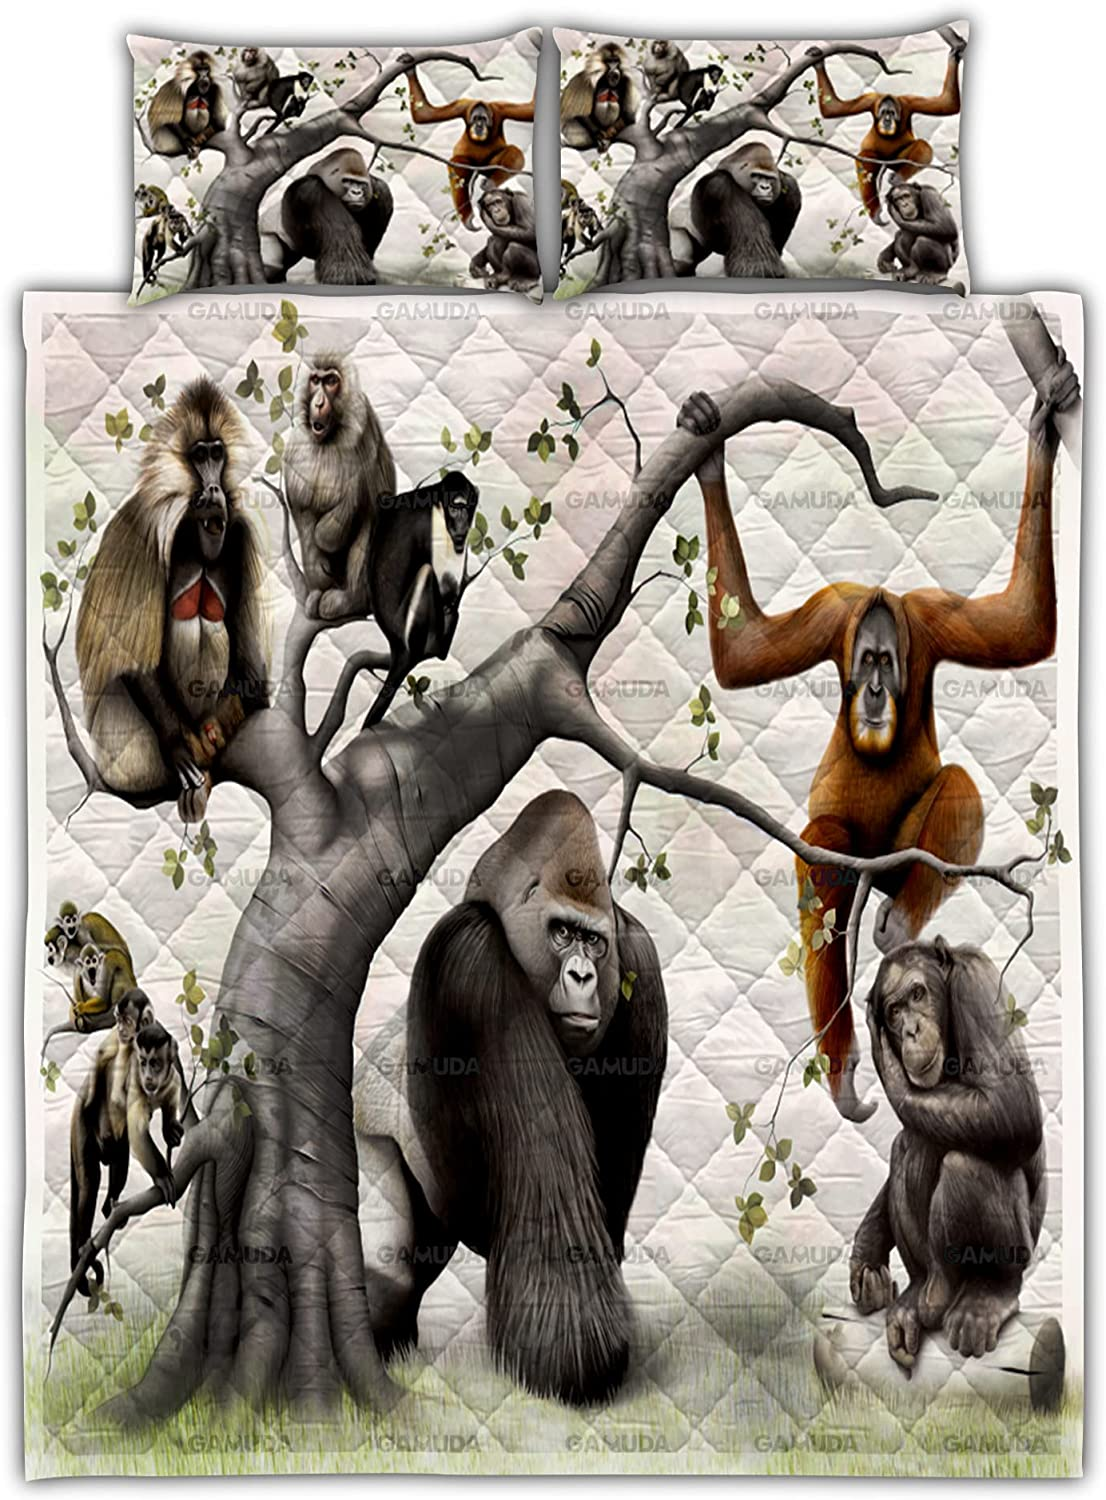 My favorite Primate Family Tree Quilt Bedding Cover Duvet Set Pillow Cove cheap